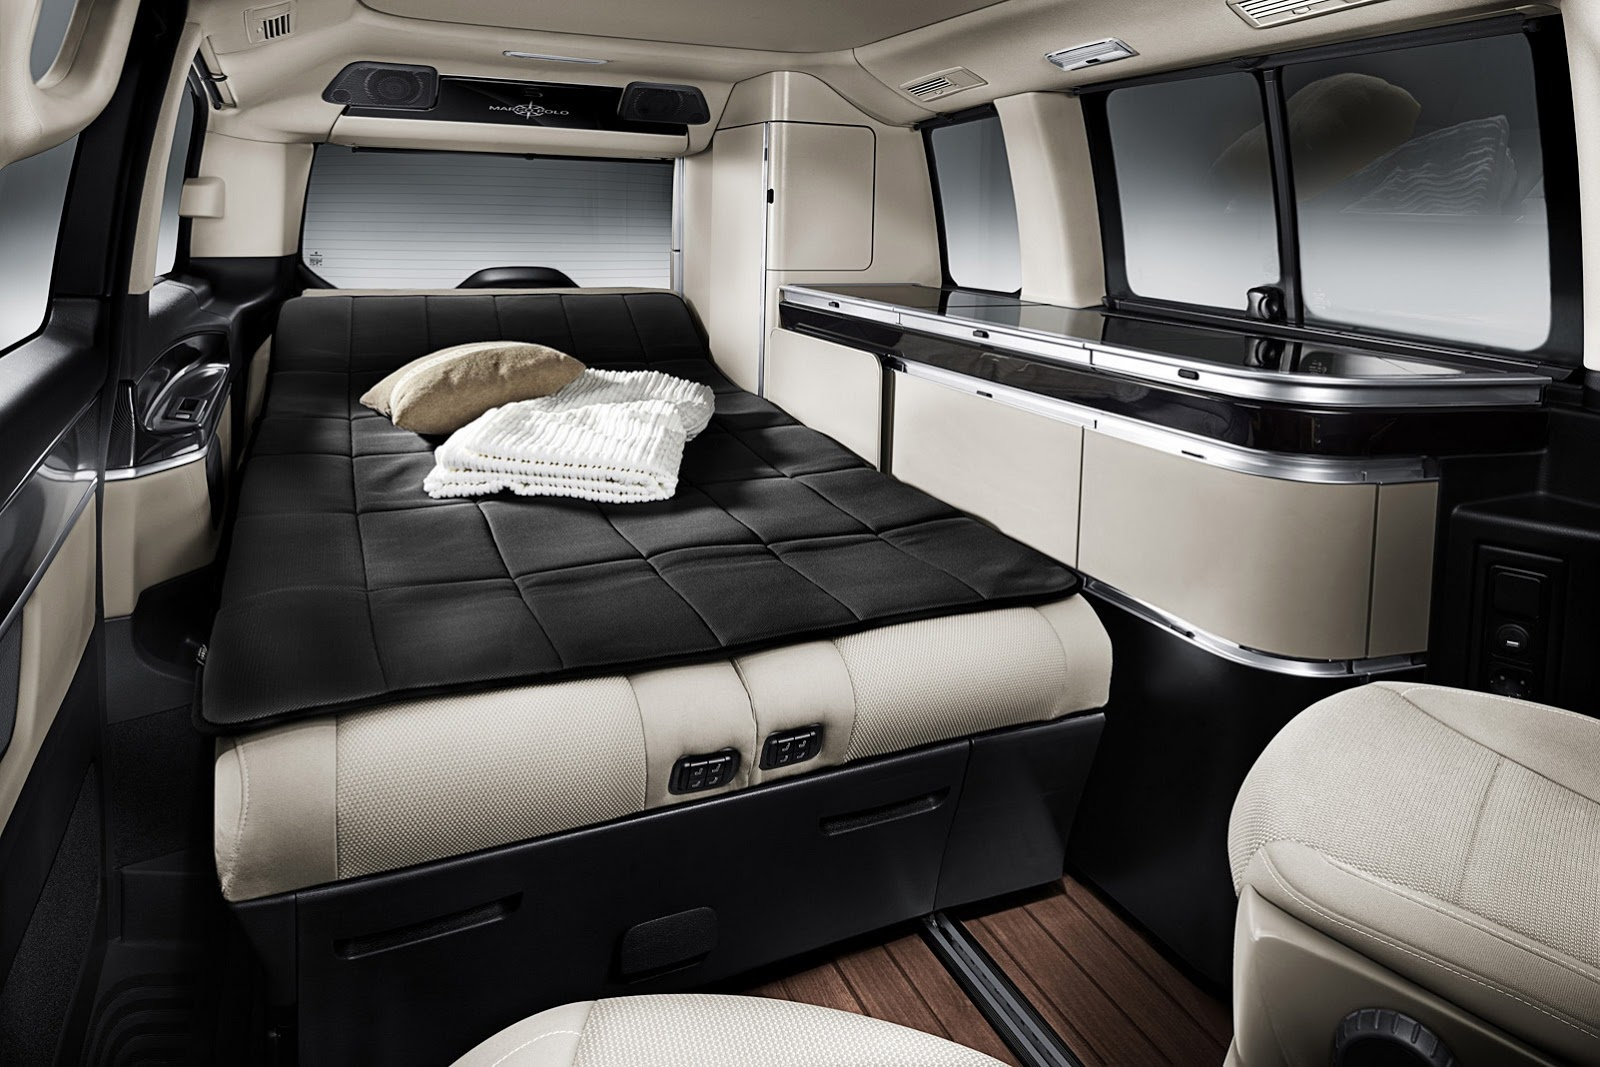 It S Time To Sleep With The Flick Of A Switch Two Electrically Adjule Rear Seats Will Be Transformed Into Lavish Bed